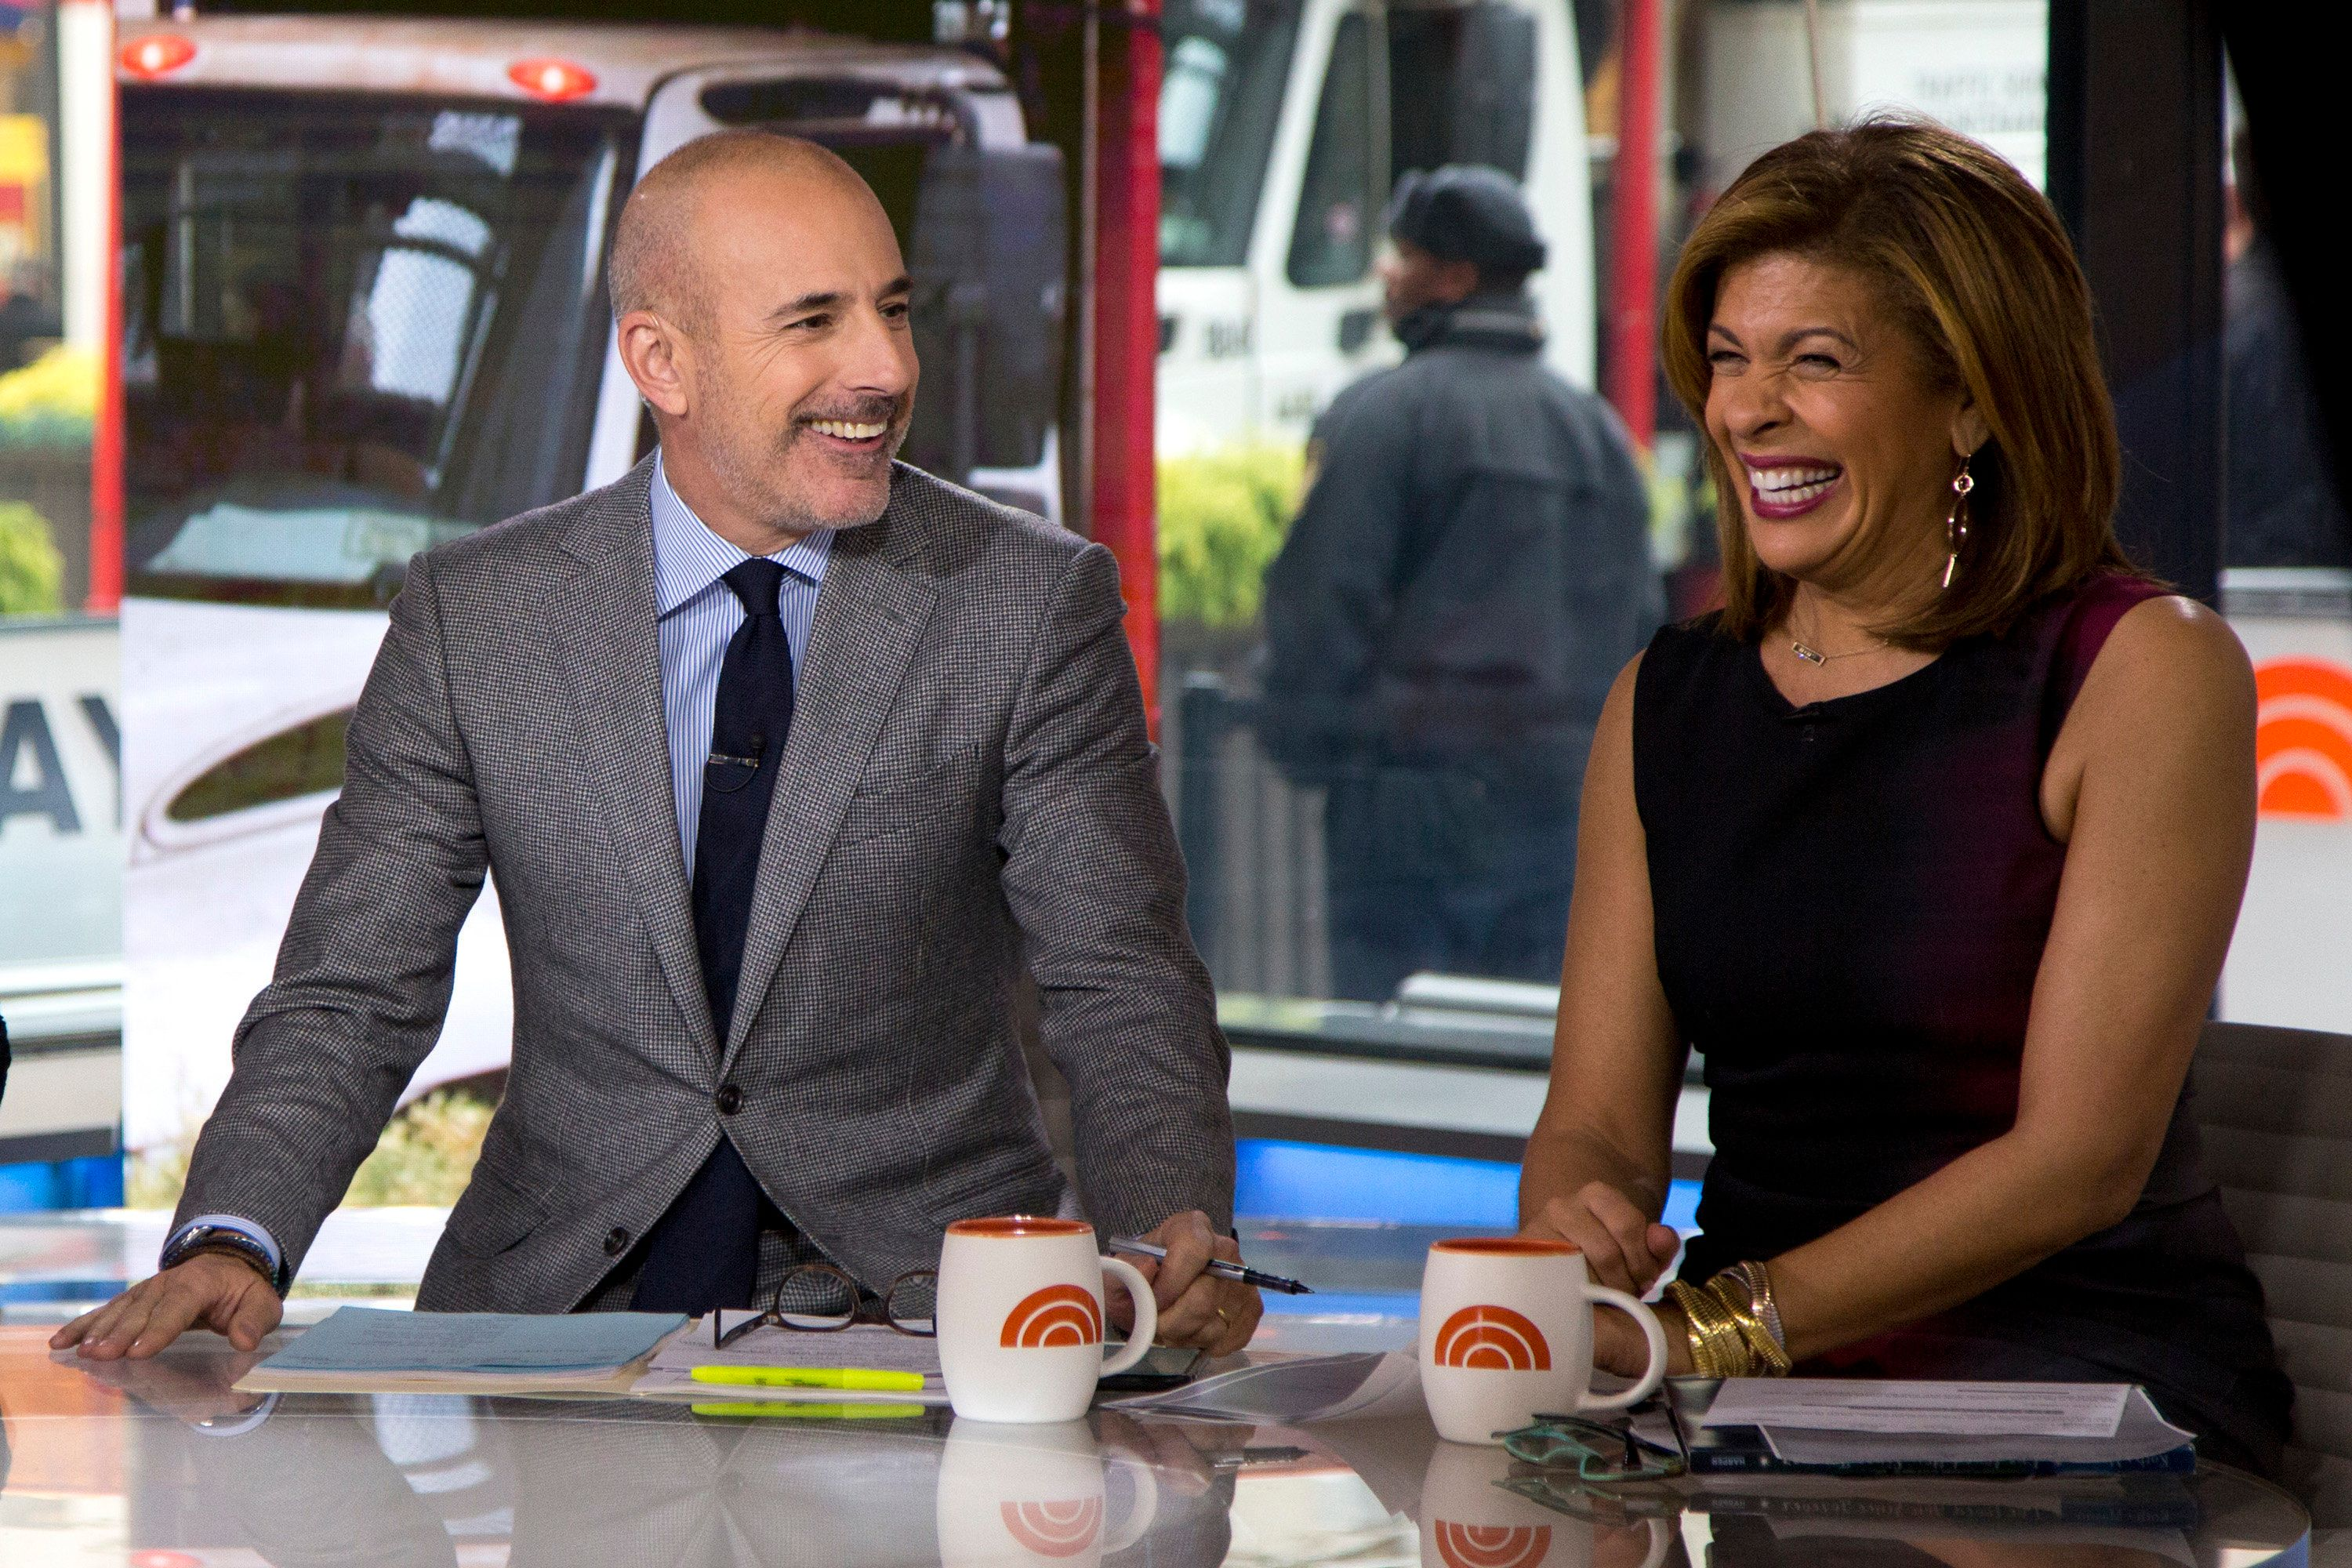 Anchor Criticizing NBC Production Flaws After Congratulating Hoda Kotb